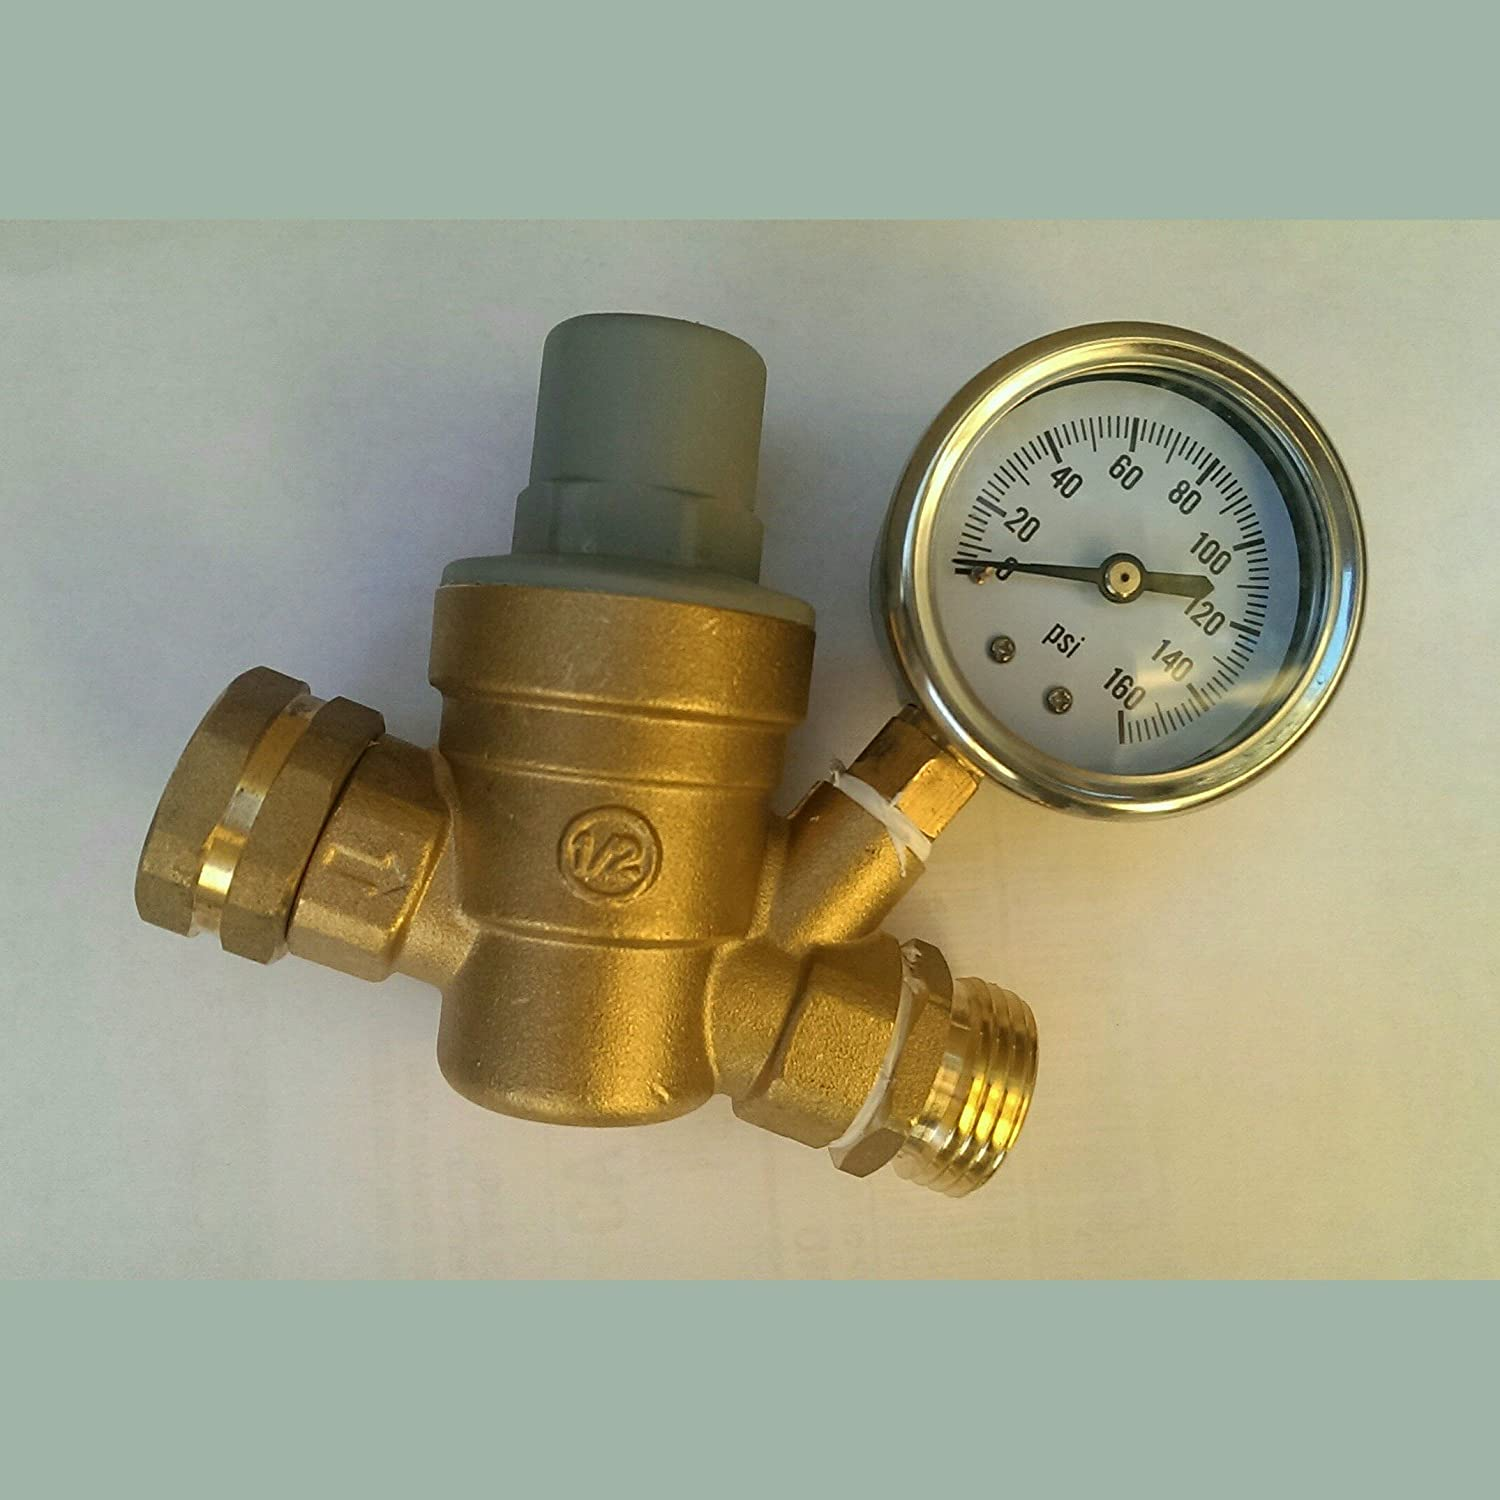 water pressure regulator rv brass lead free adjustable valve gauge irrigation ebay. Black Bedroom Furniture Sets. Home Design Ideas